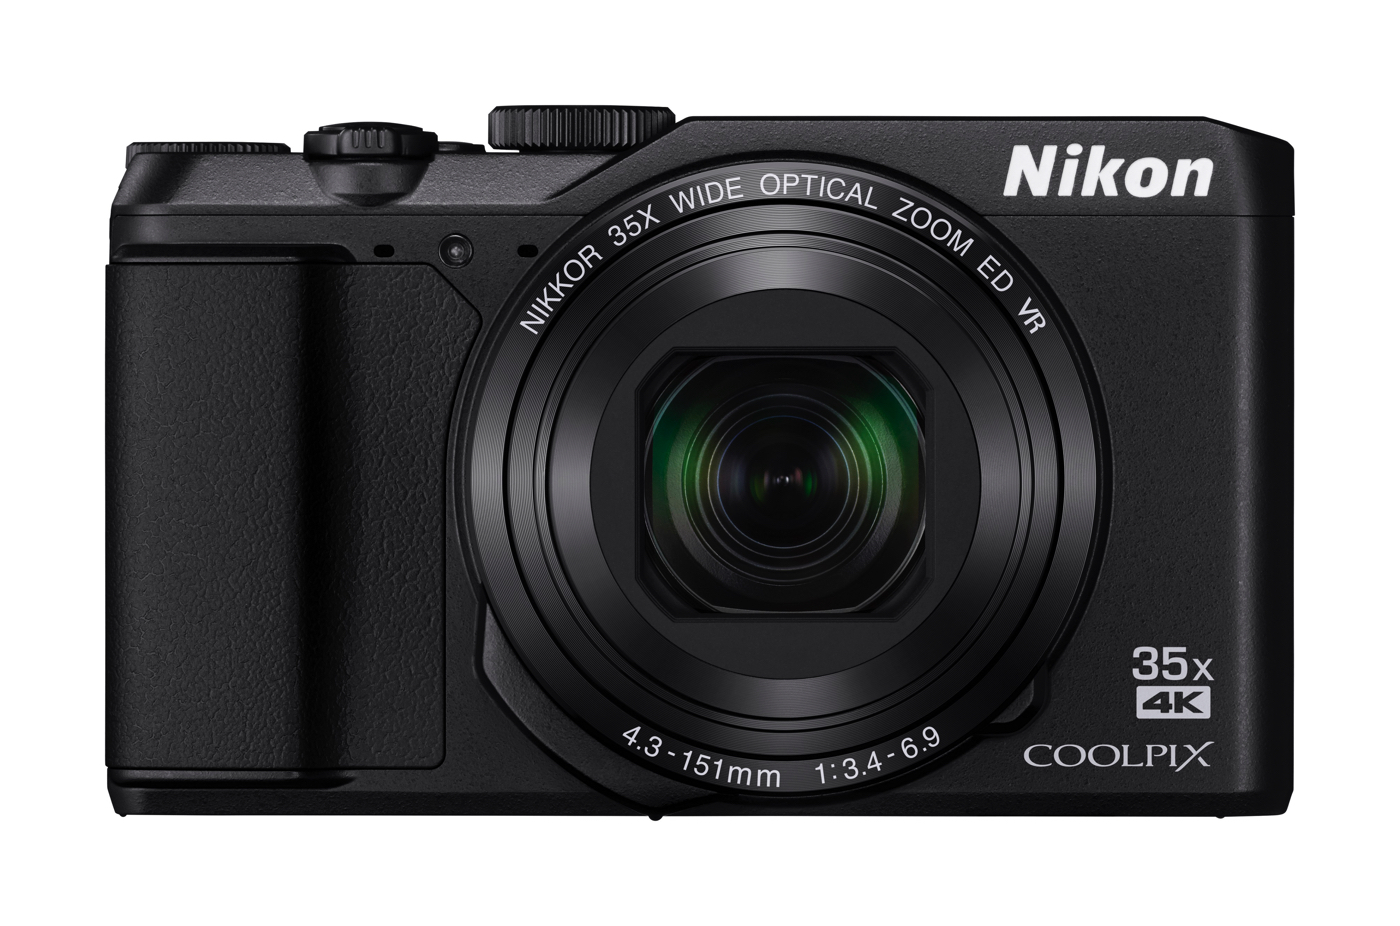 Nikon's A900 is the first Coolpix point-and-shoot with 4K